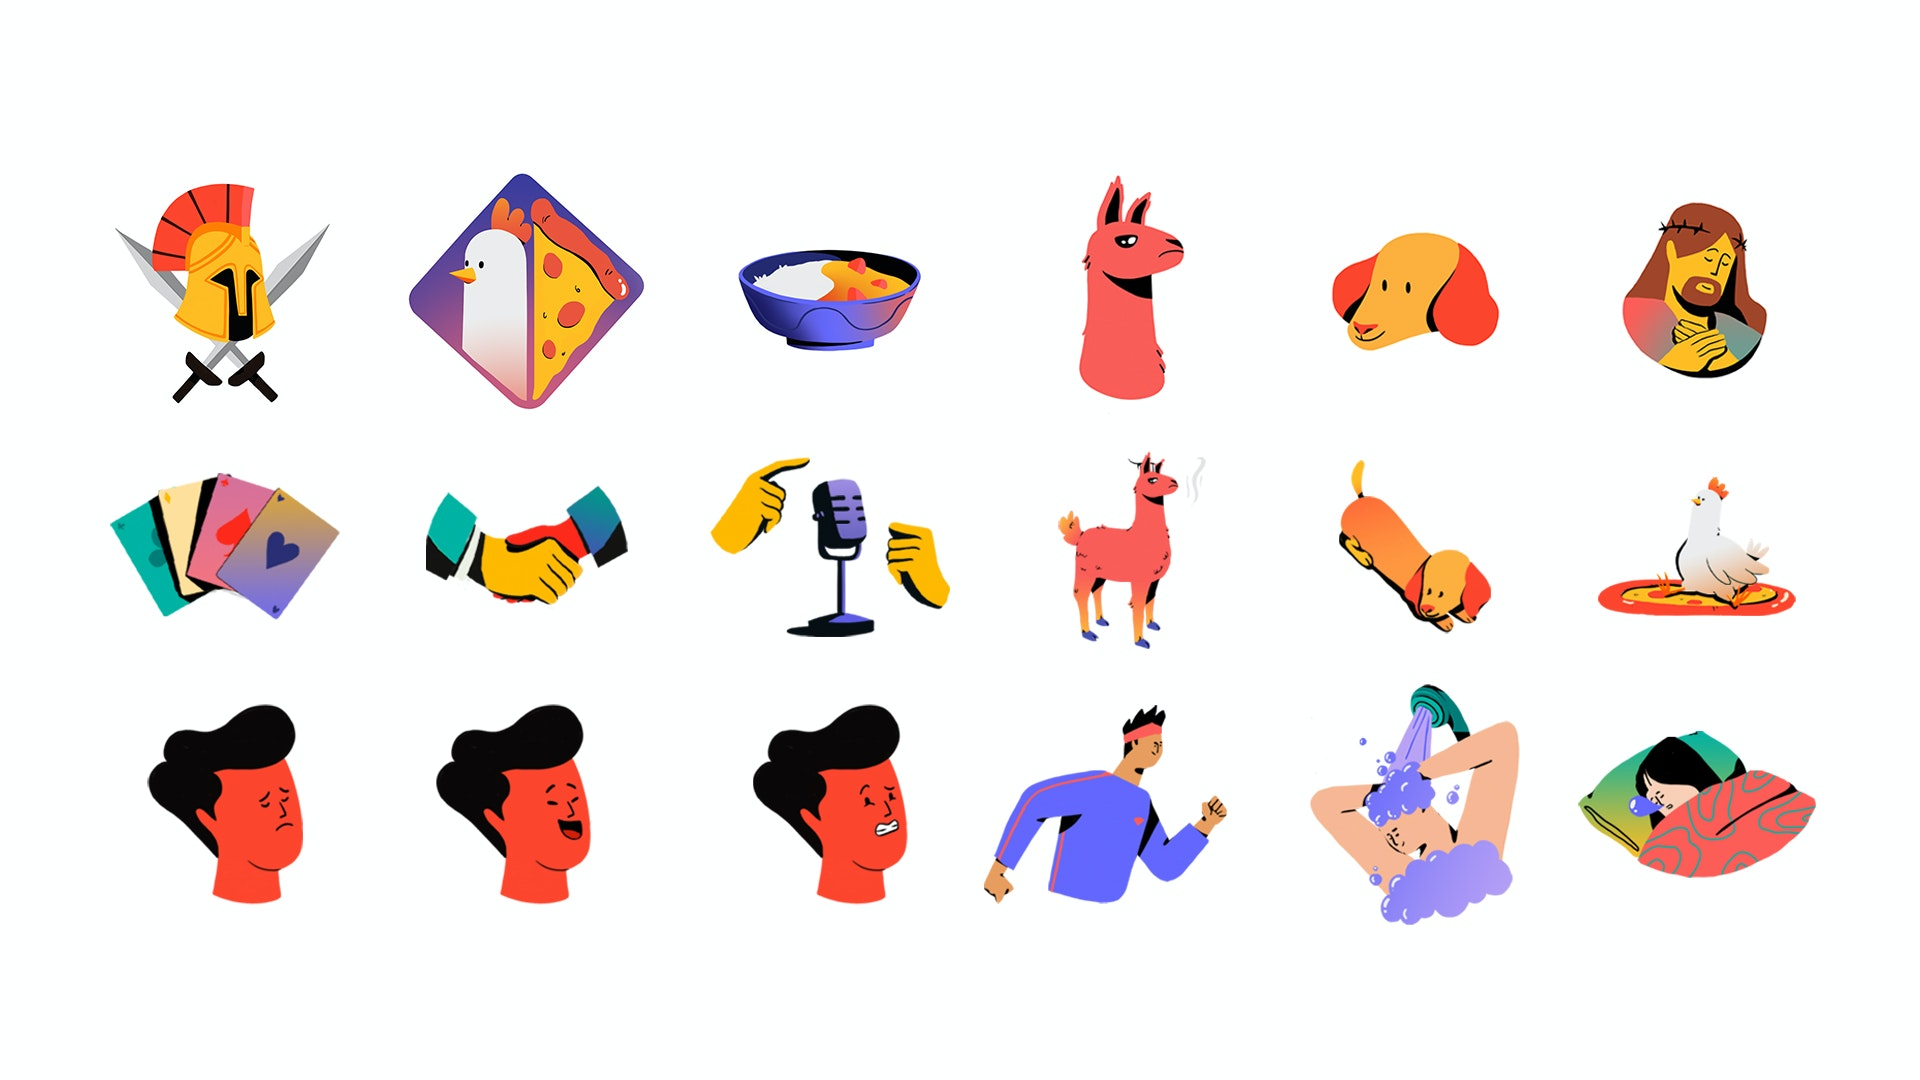 Character design illustration of gladiator, chicken, pizza, llama, dog, christ, curry bowl, cards,  hands and funny faces